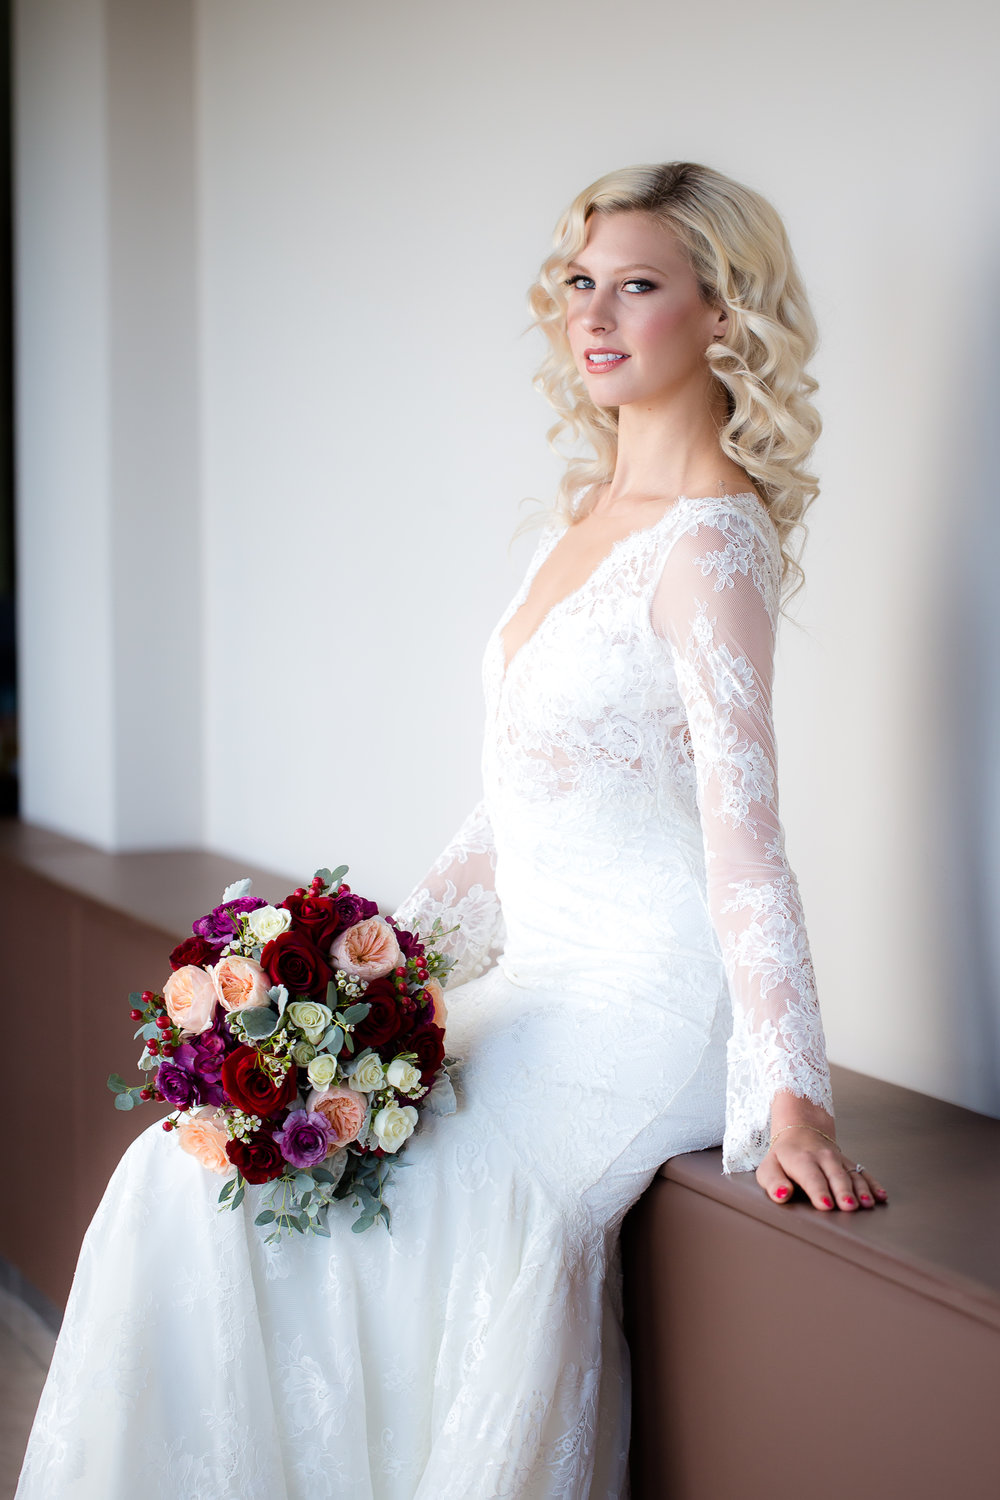 Perfect hair and makeup for Las Vegas wedding